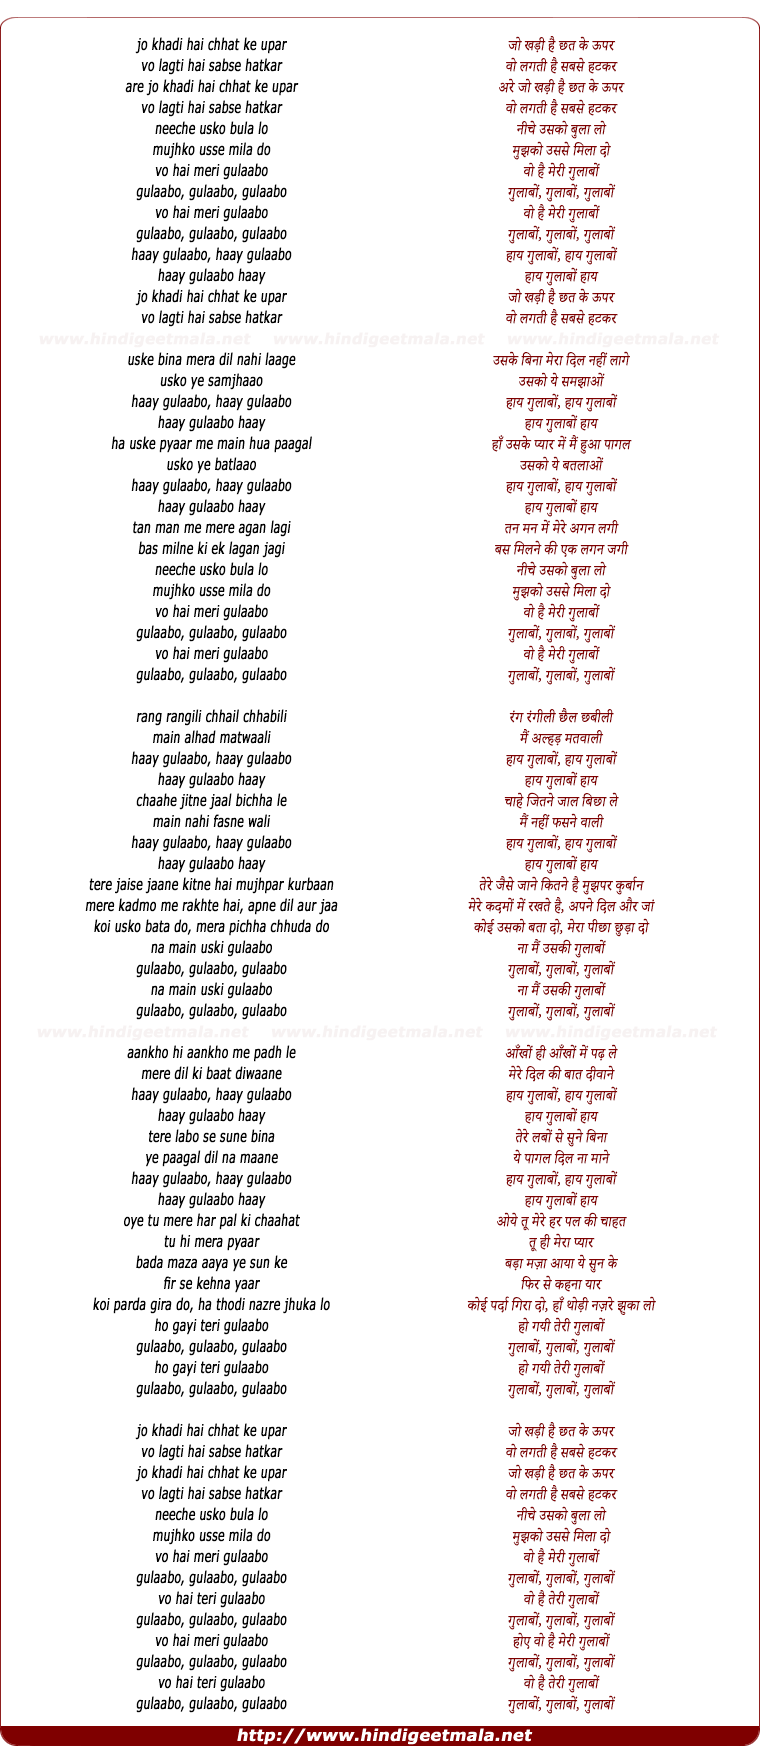 lyrics of song Hay Gulaabo Hay Gulaabo